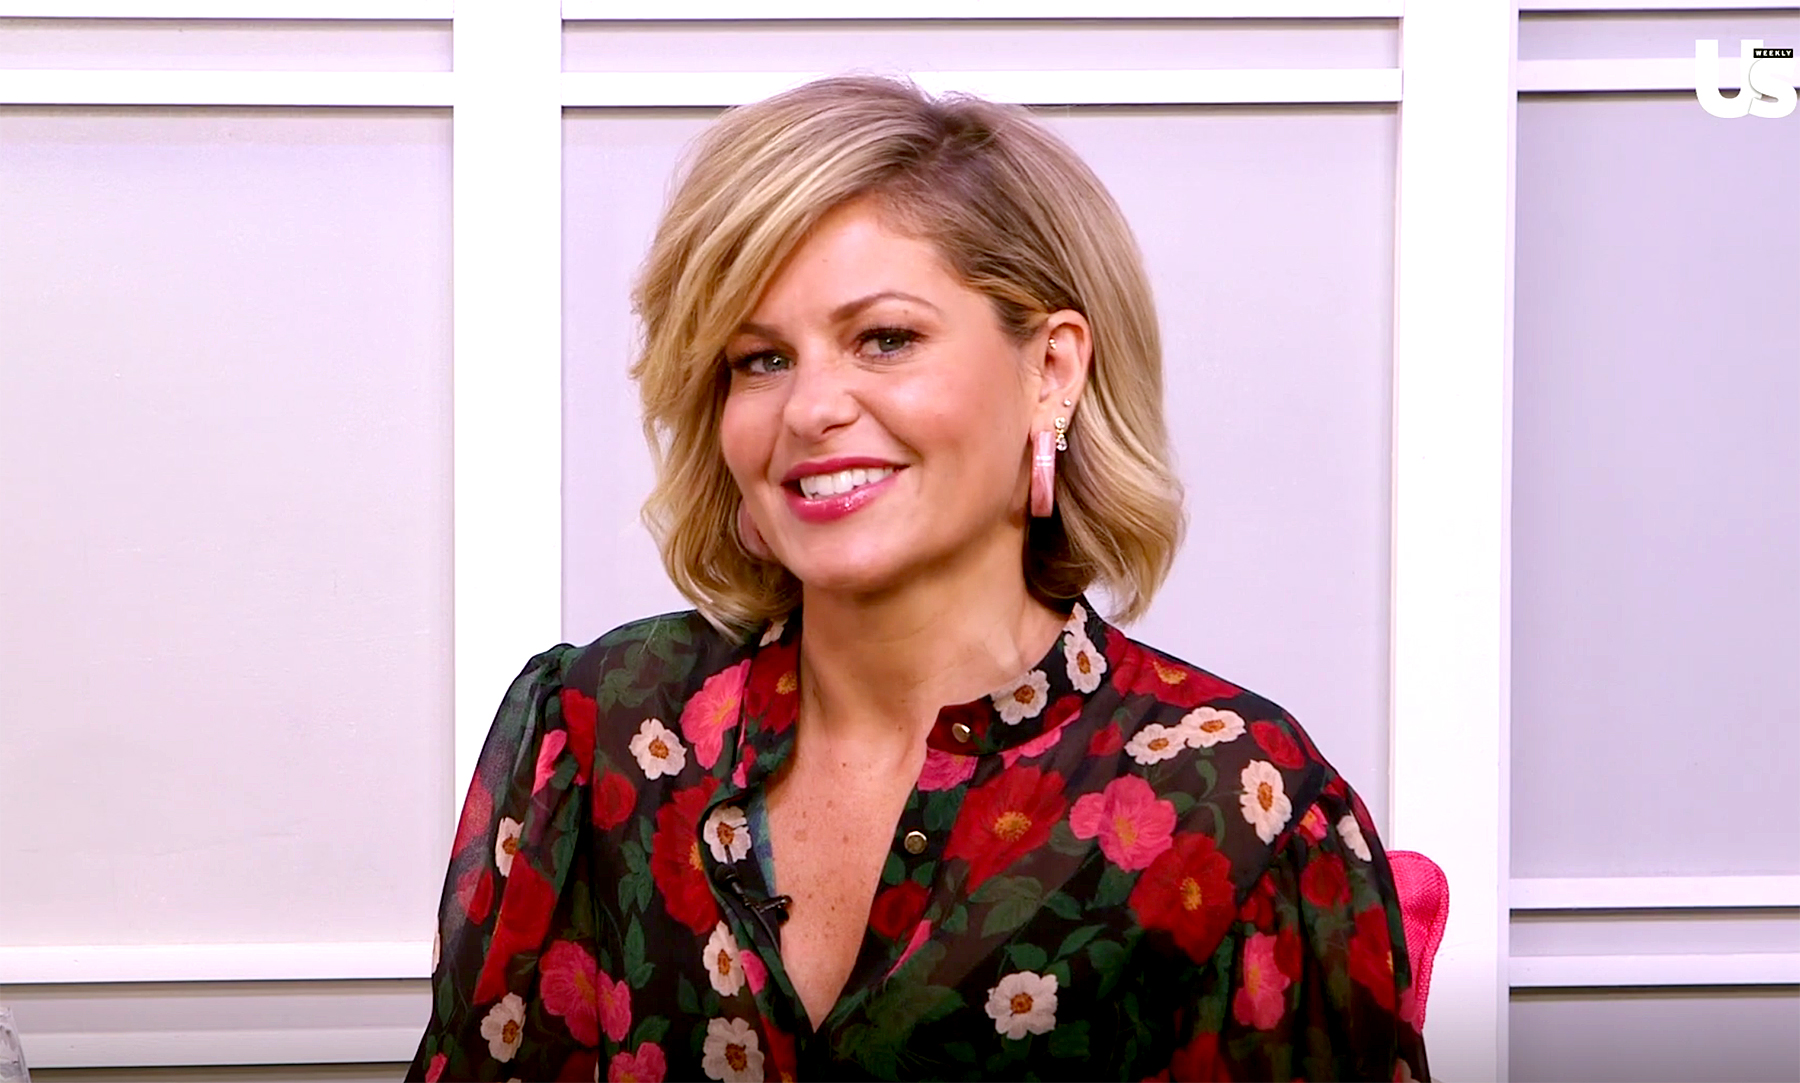 candace cameron reveals secret to happy marriage put spouse on a